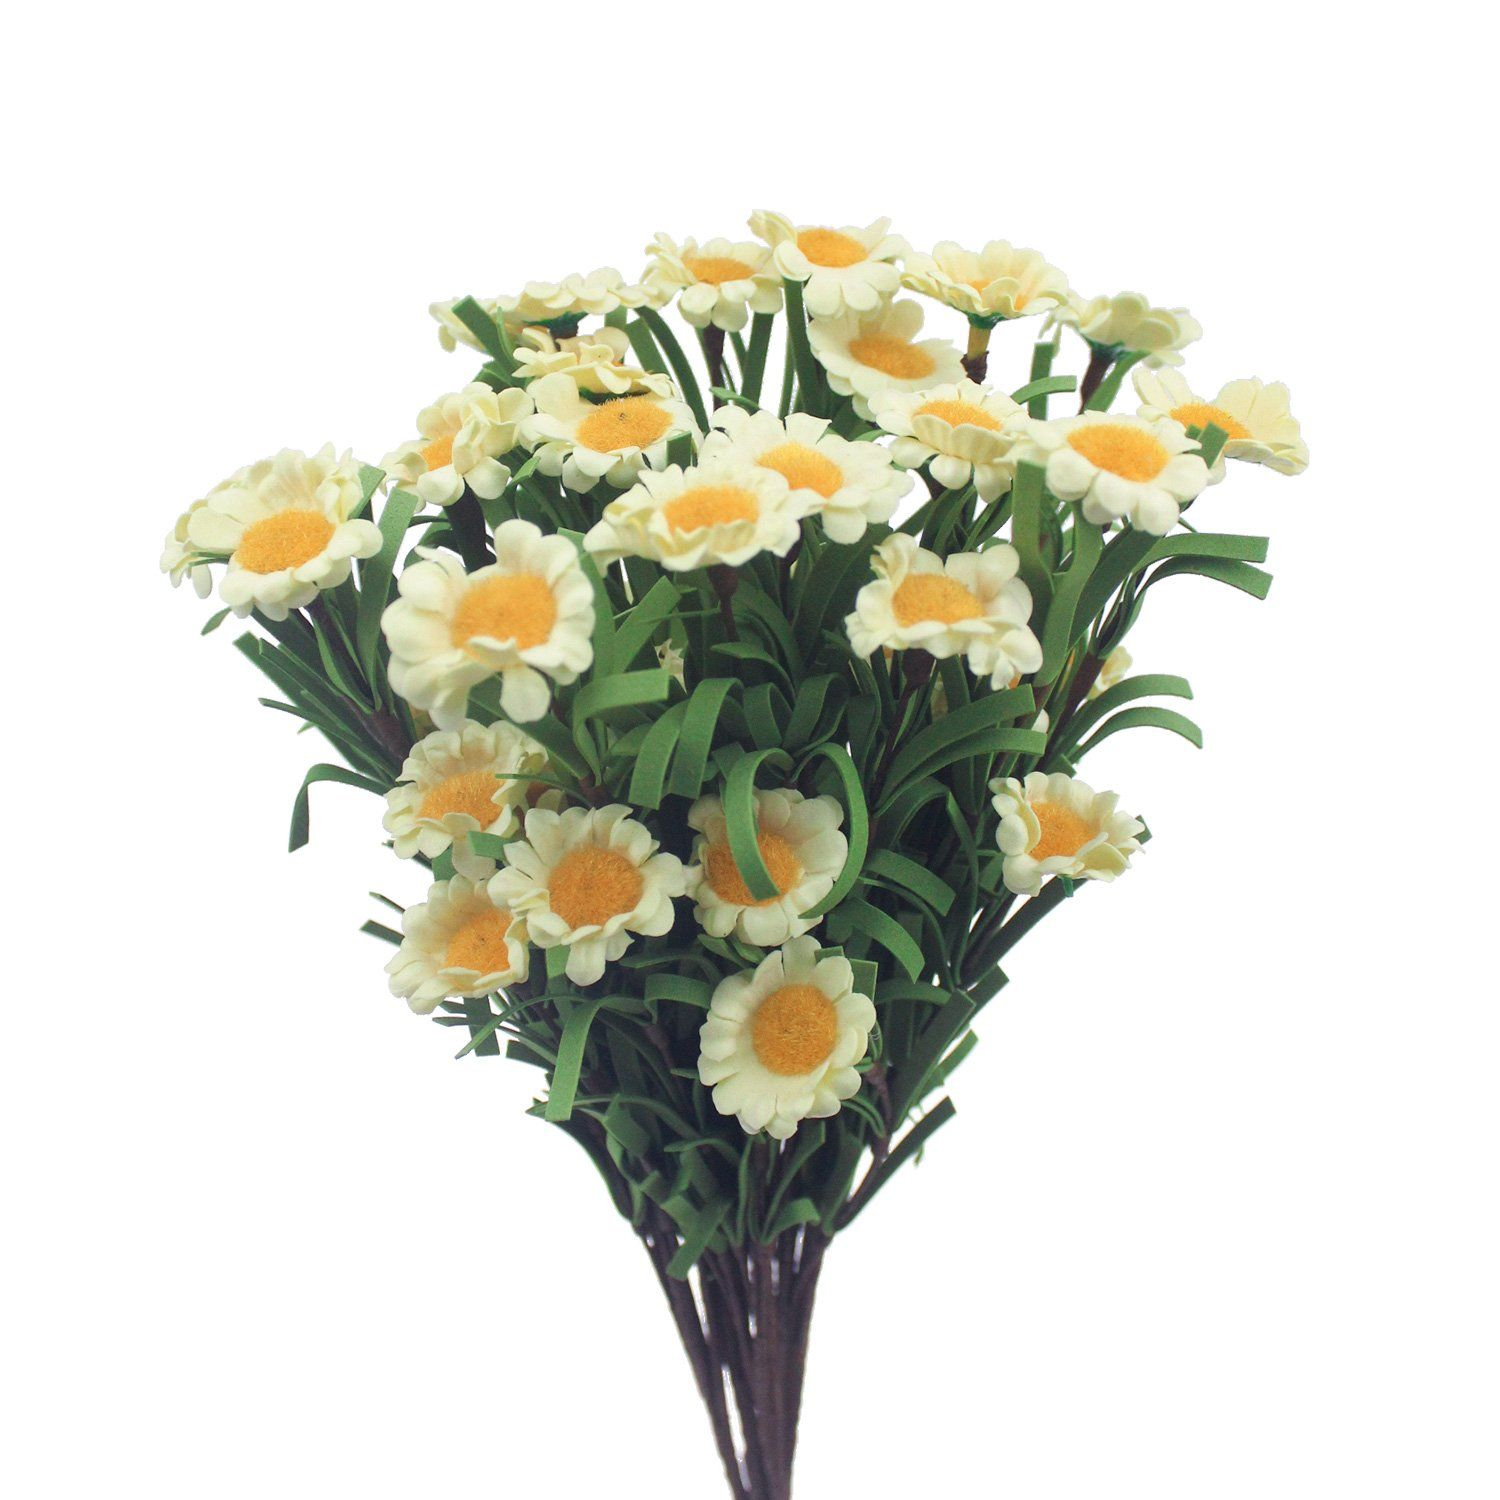 Mtes fake flower bouquets artificial daisies pe fabric 8 heads of mtes fake flower bouquets artificial daisies pe fabric 8 heads of wedding bouquets decorative flowers yellow health and beauty pinterest flower izmirmasajfo